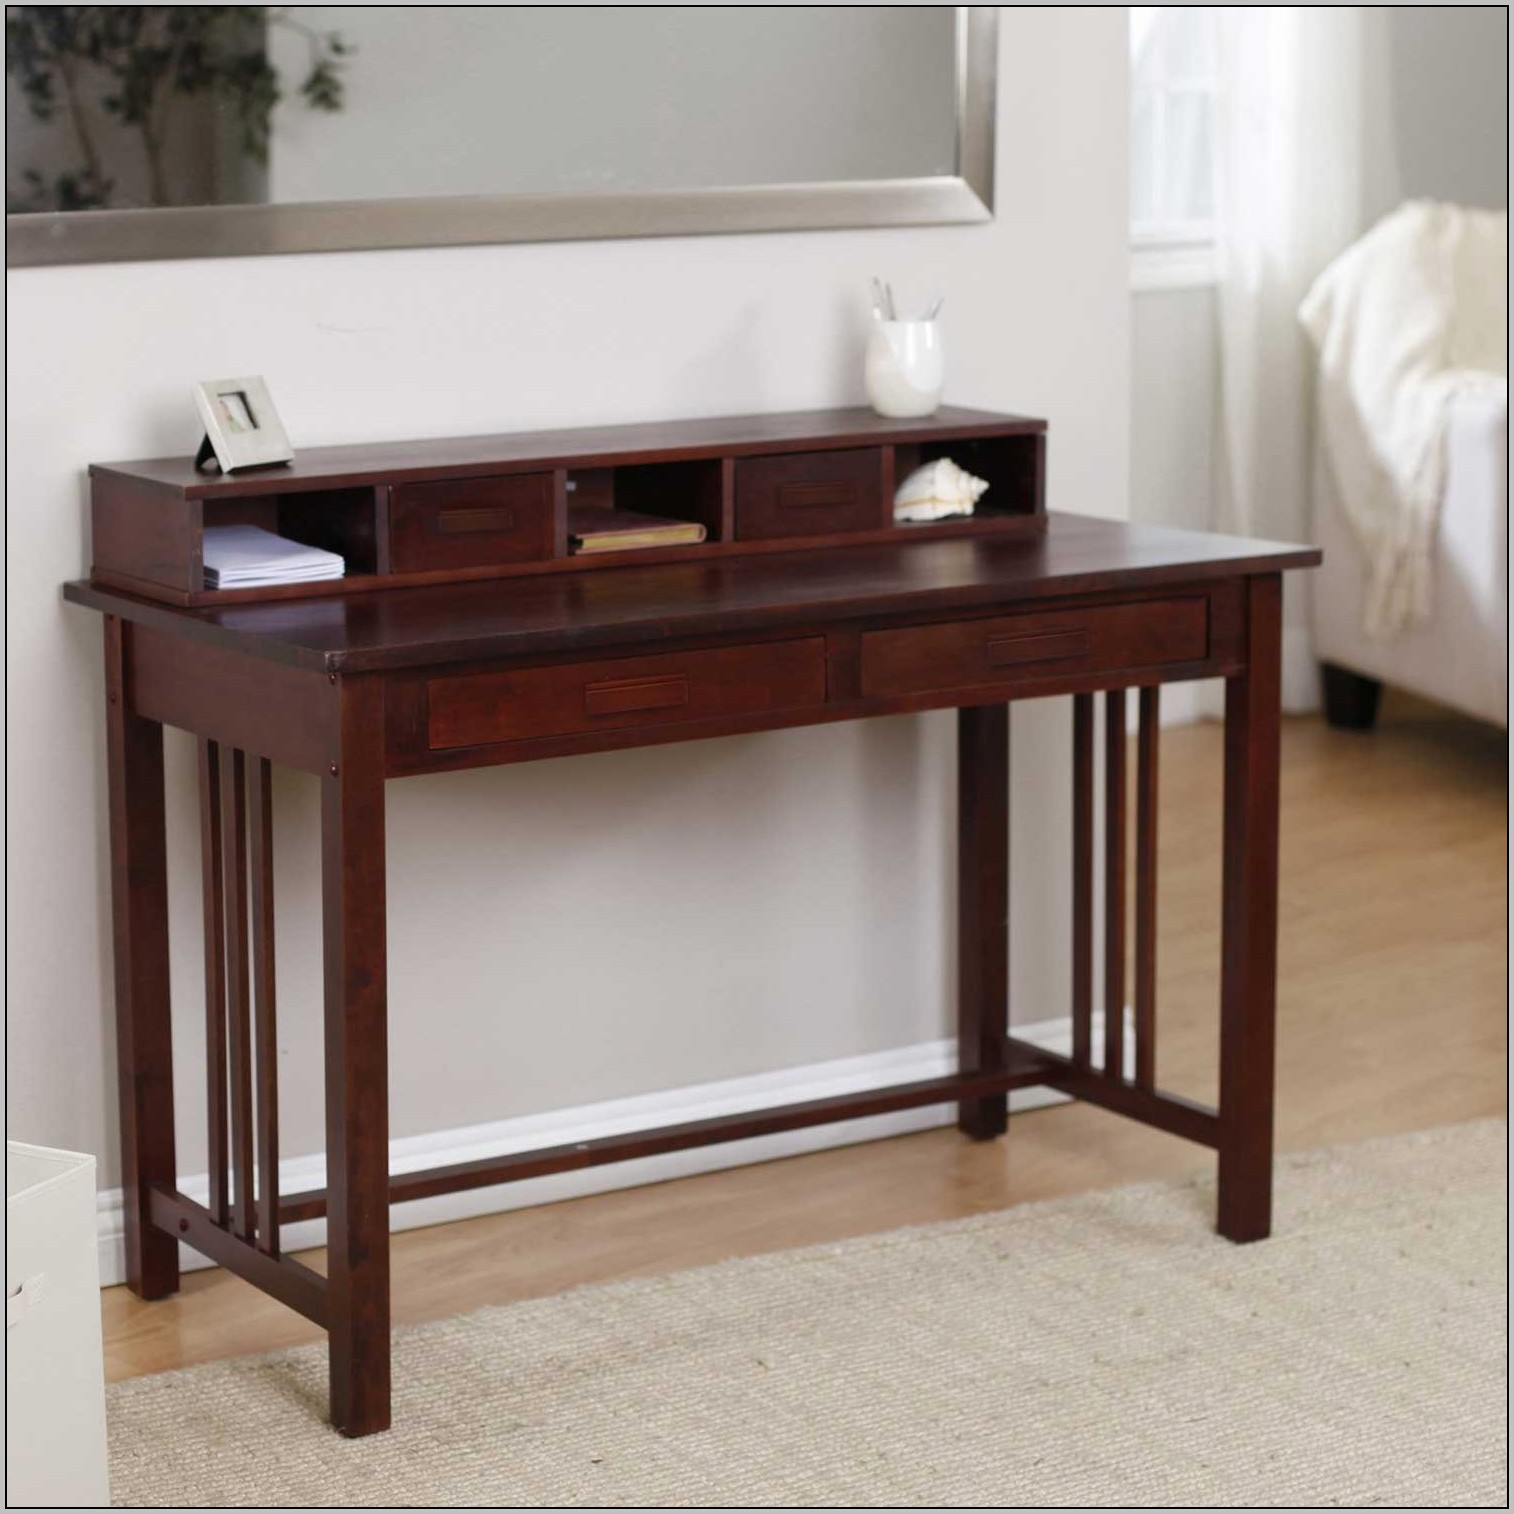 rustic writing desk Product features decorative wood writing desk table with elegant farmhouse legs and drawer.